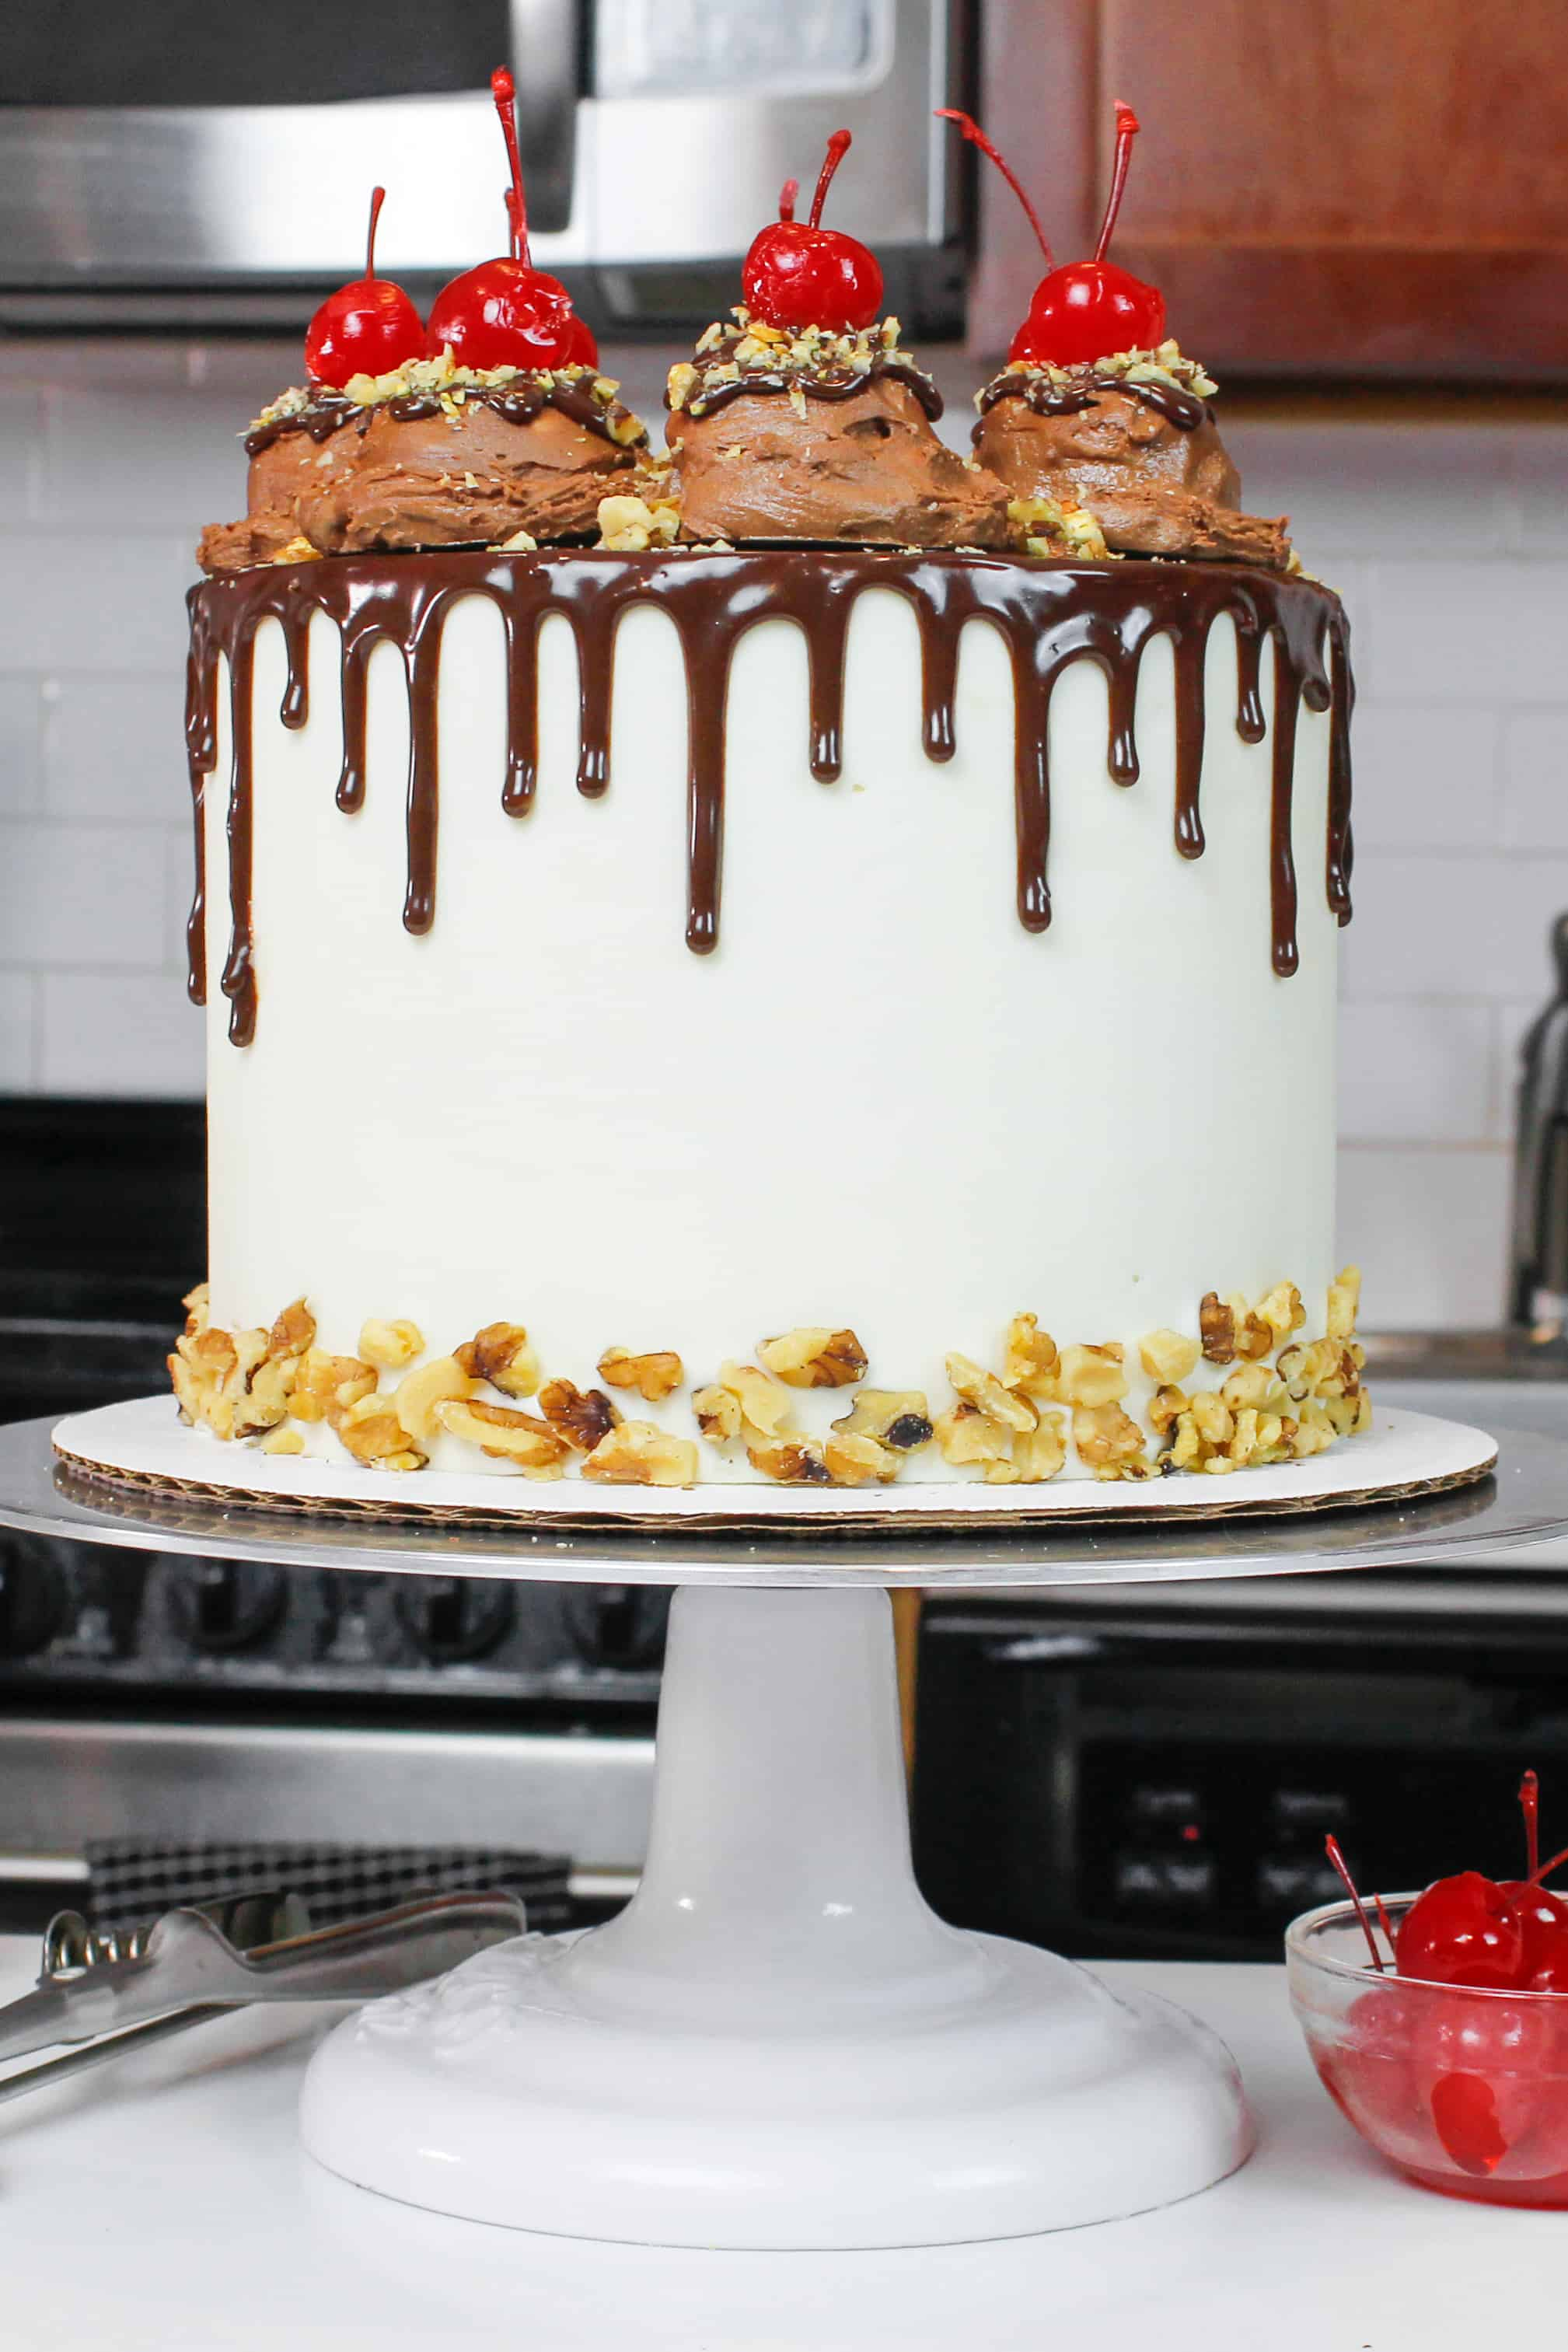 finished rocky road chocolate cake with chocolate drip